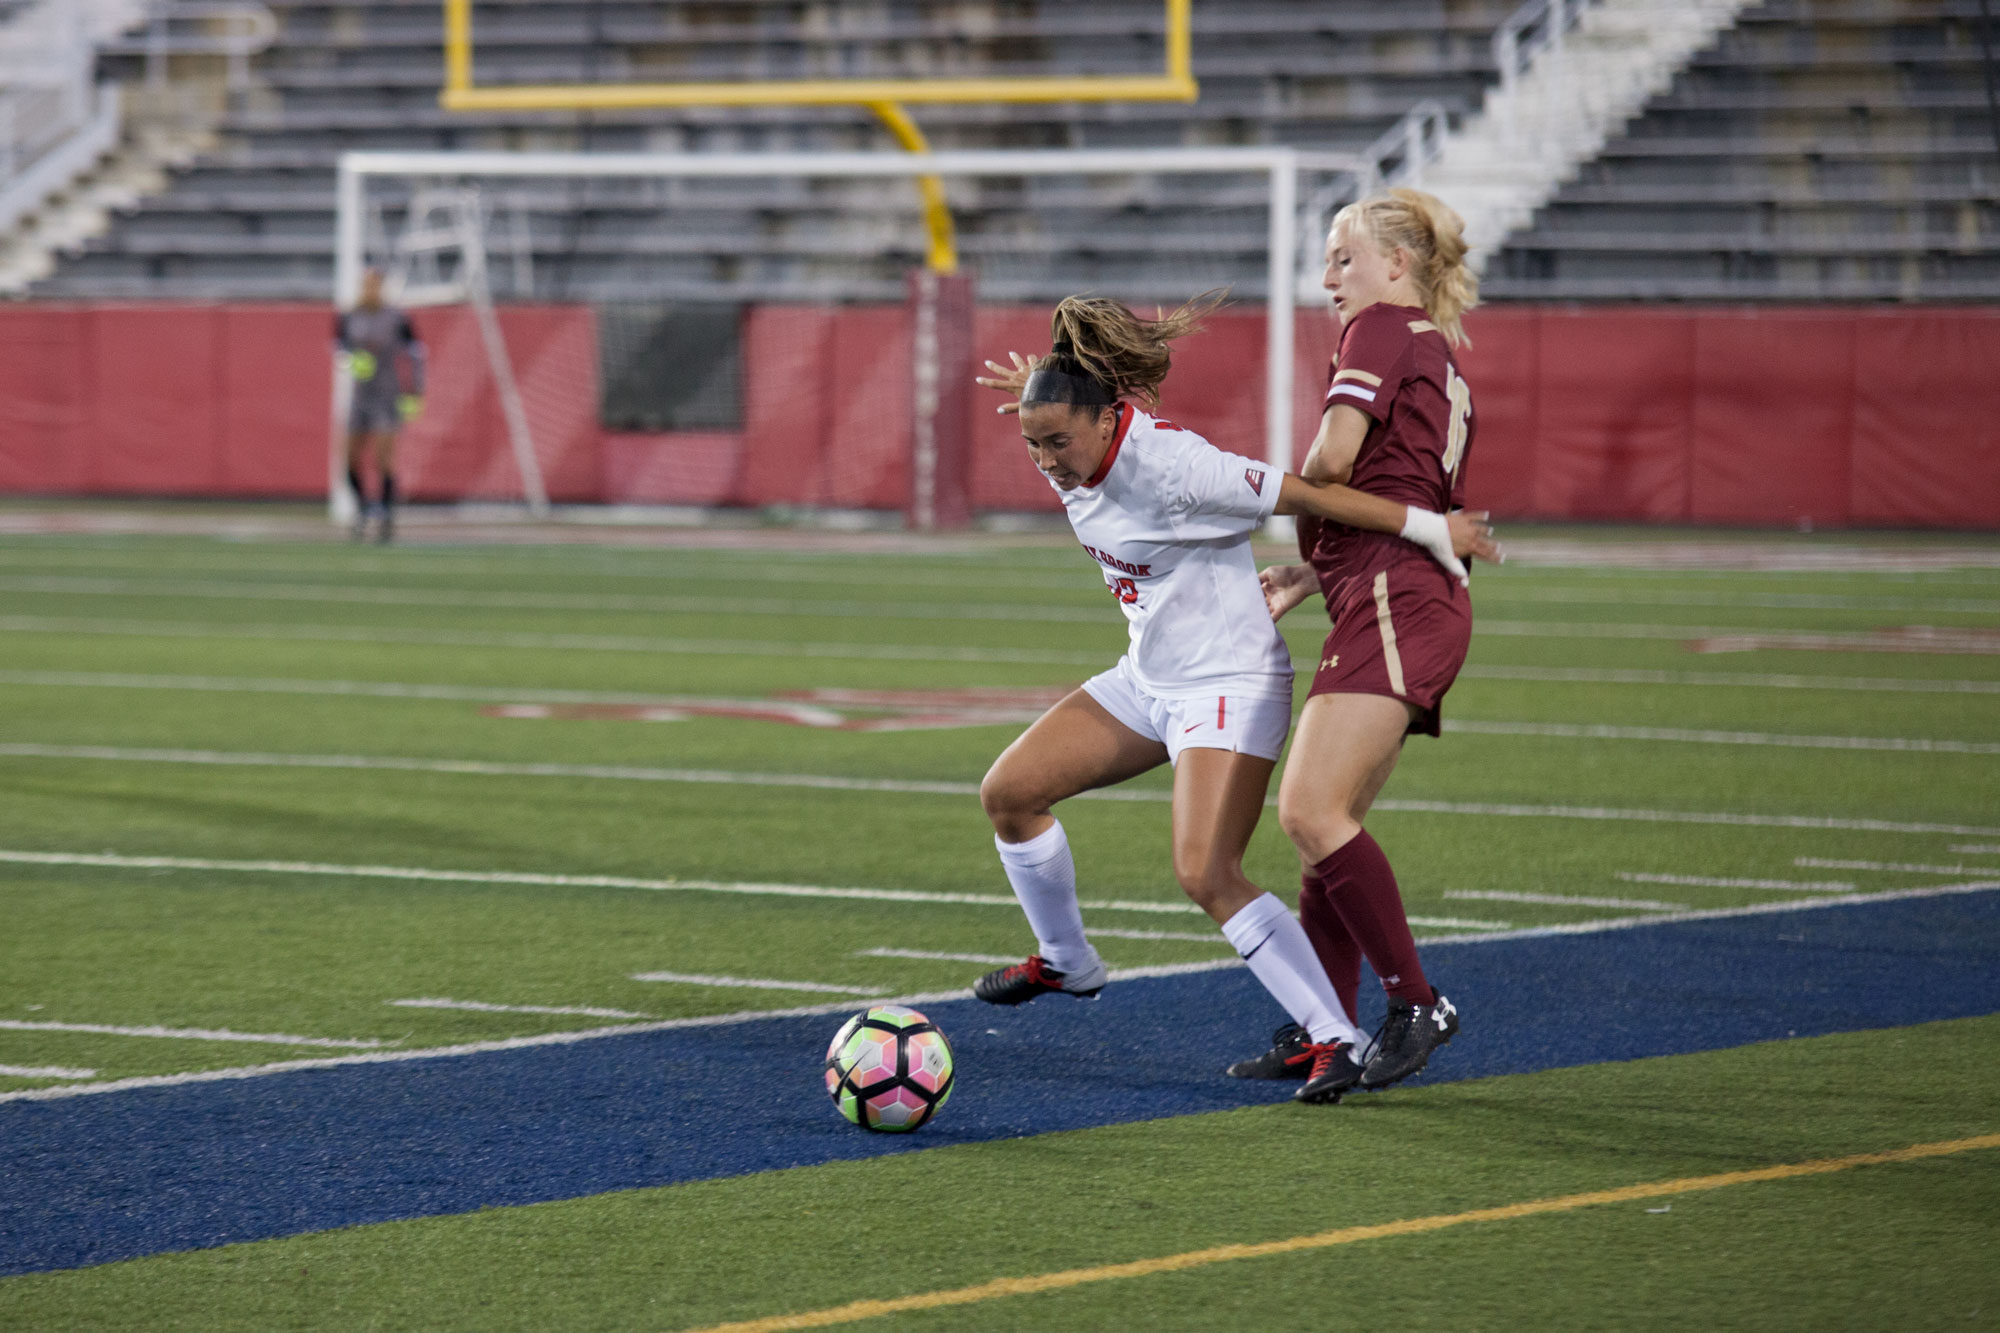 Women's Soccer Preview: Young core showing promise, but still learning